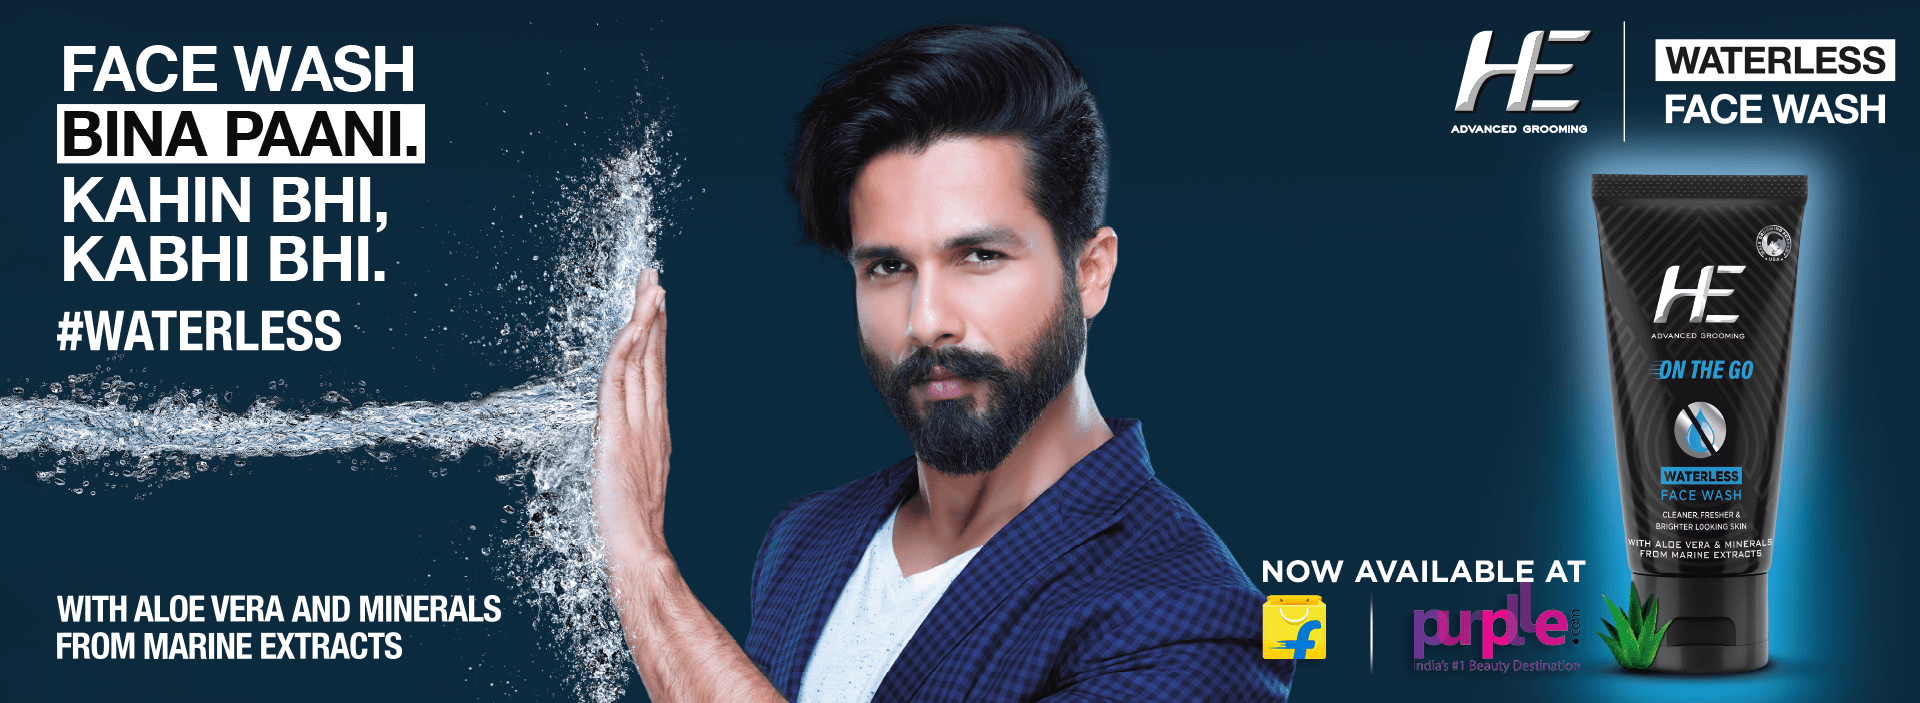 shahid kapoor's he waterless facewash